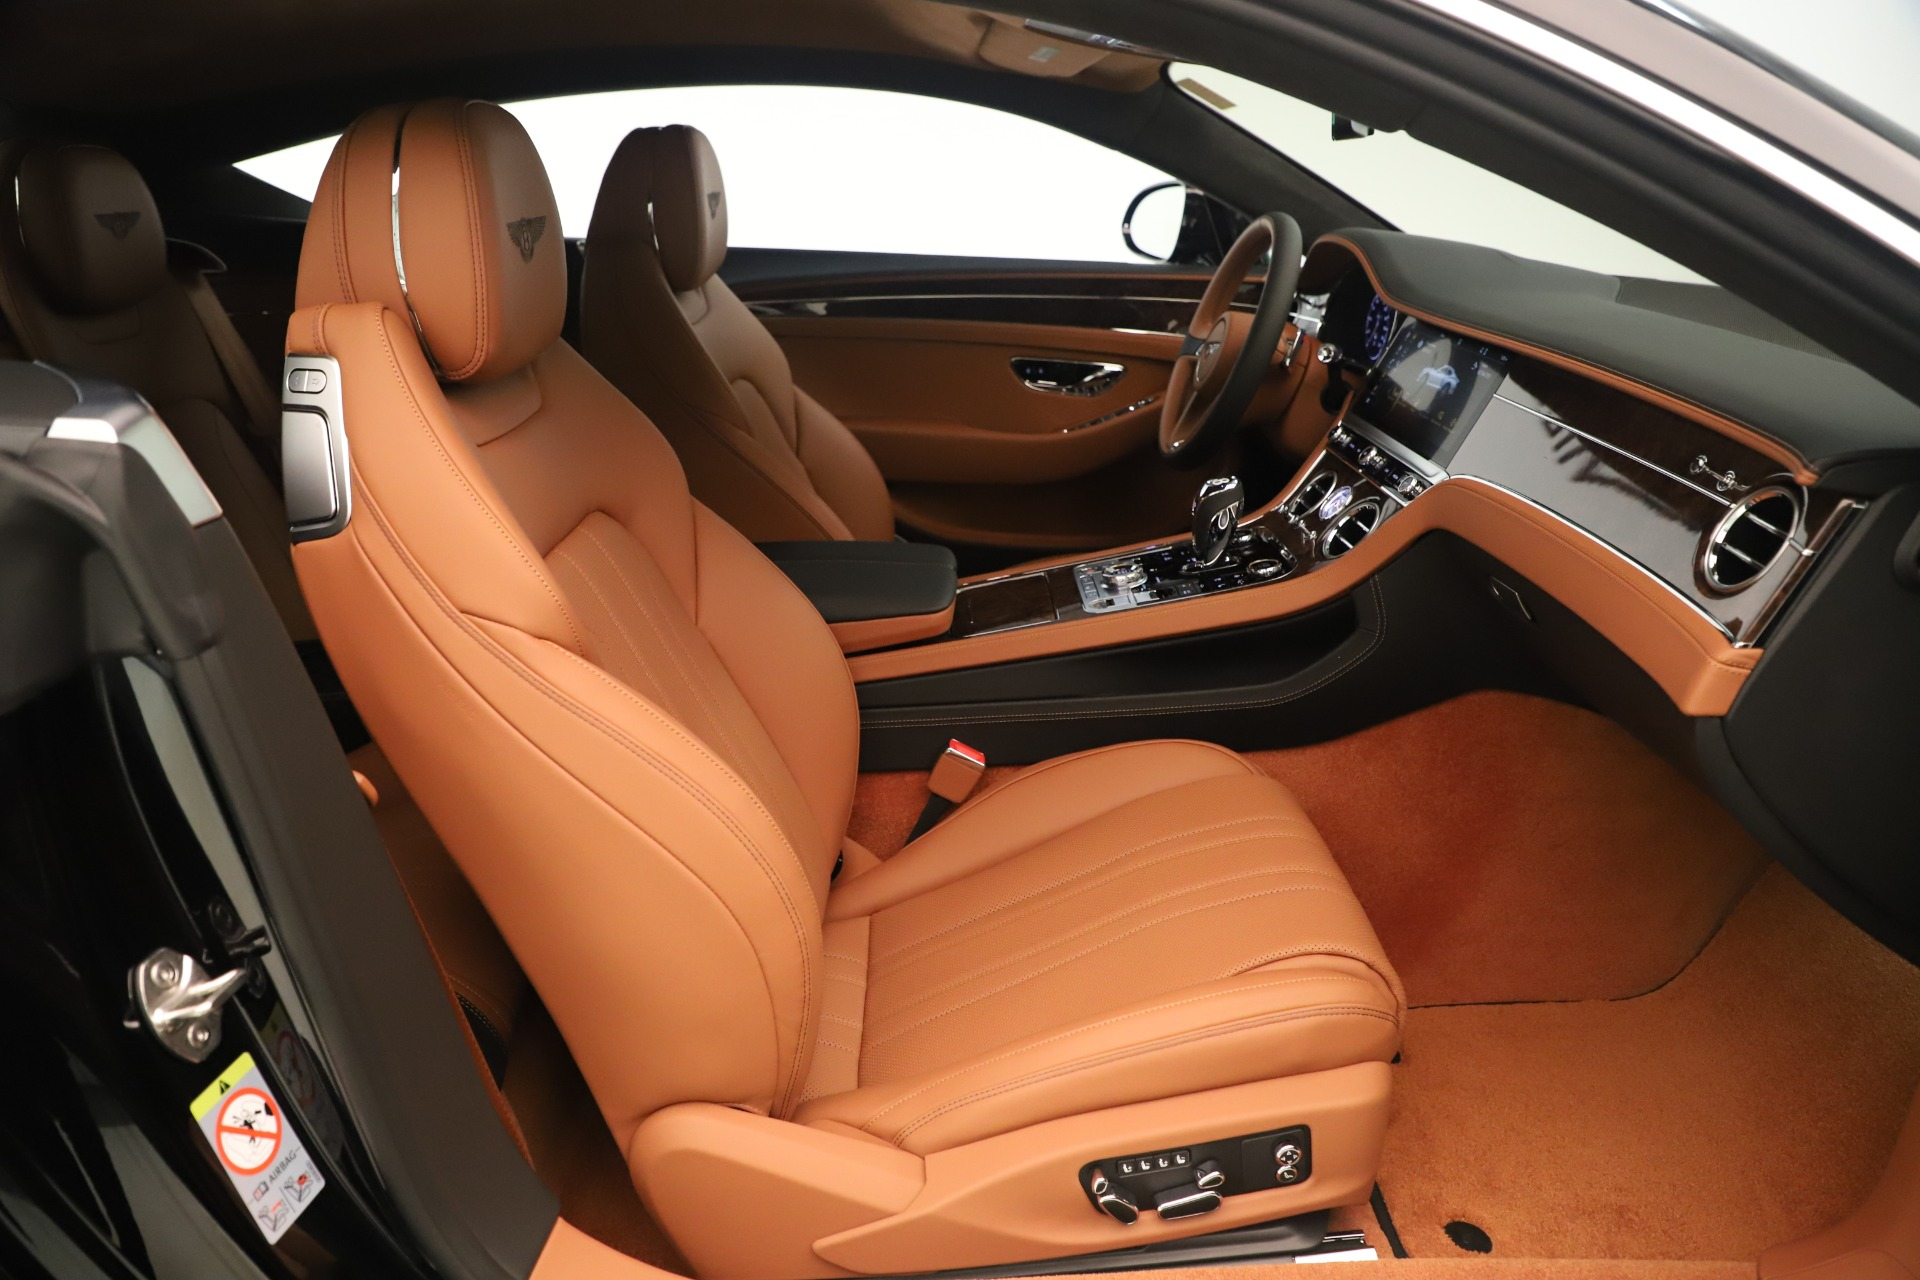 Used 2020 Bentley Continental GT V8 For Sale In Westport, CT 3460_p24